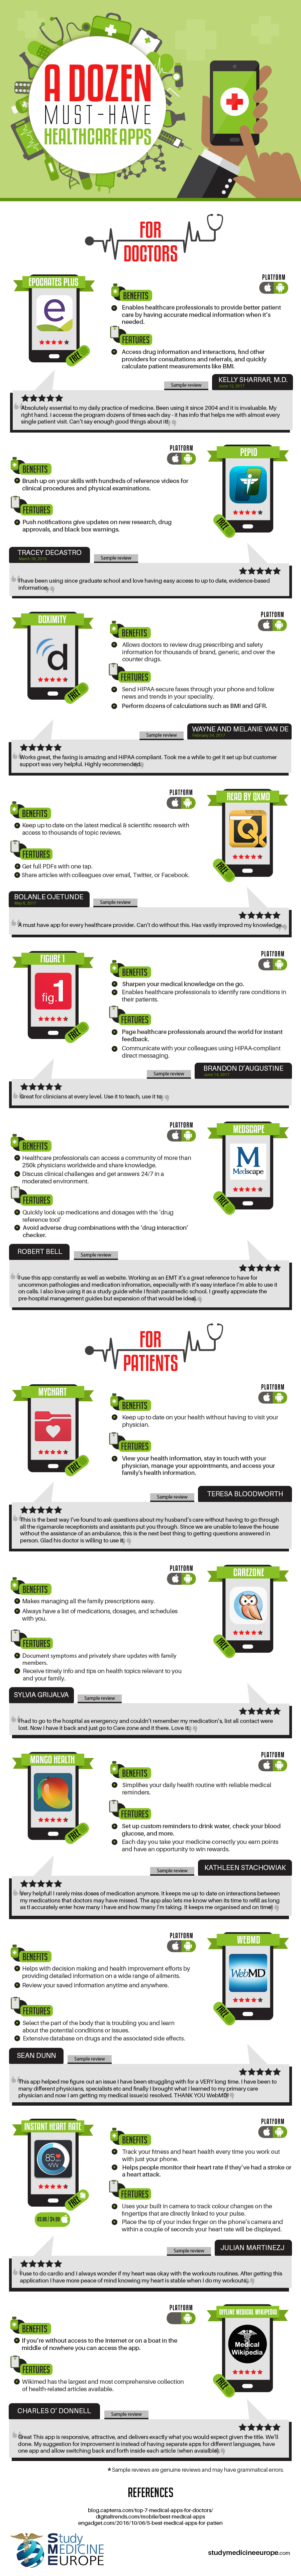 Must-Have Medical Apps for Doctors and Patients - Infographic